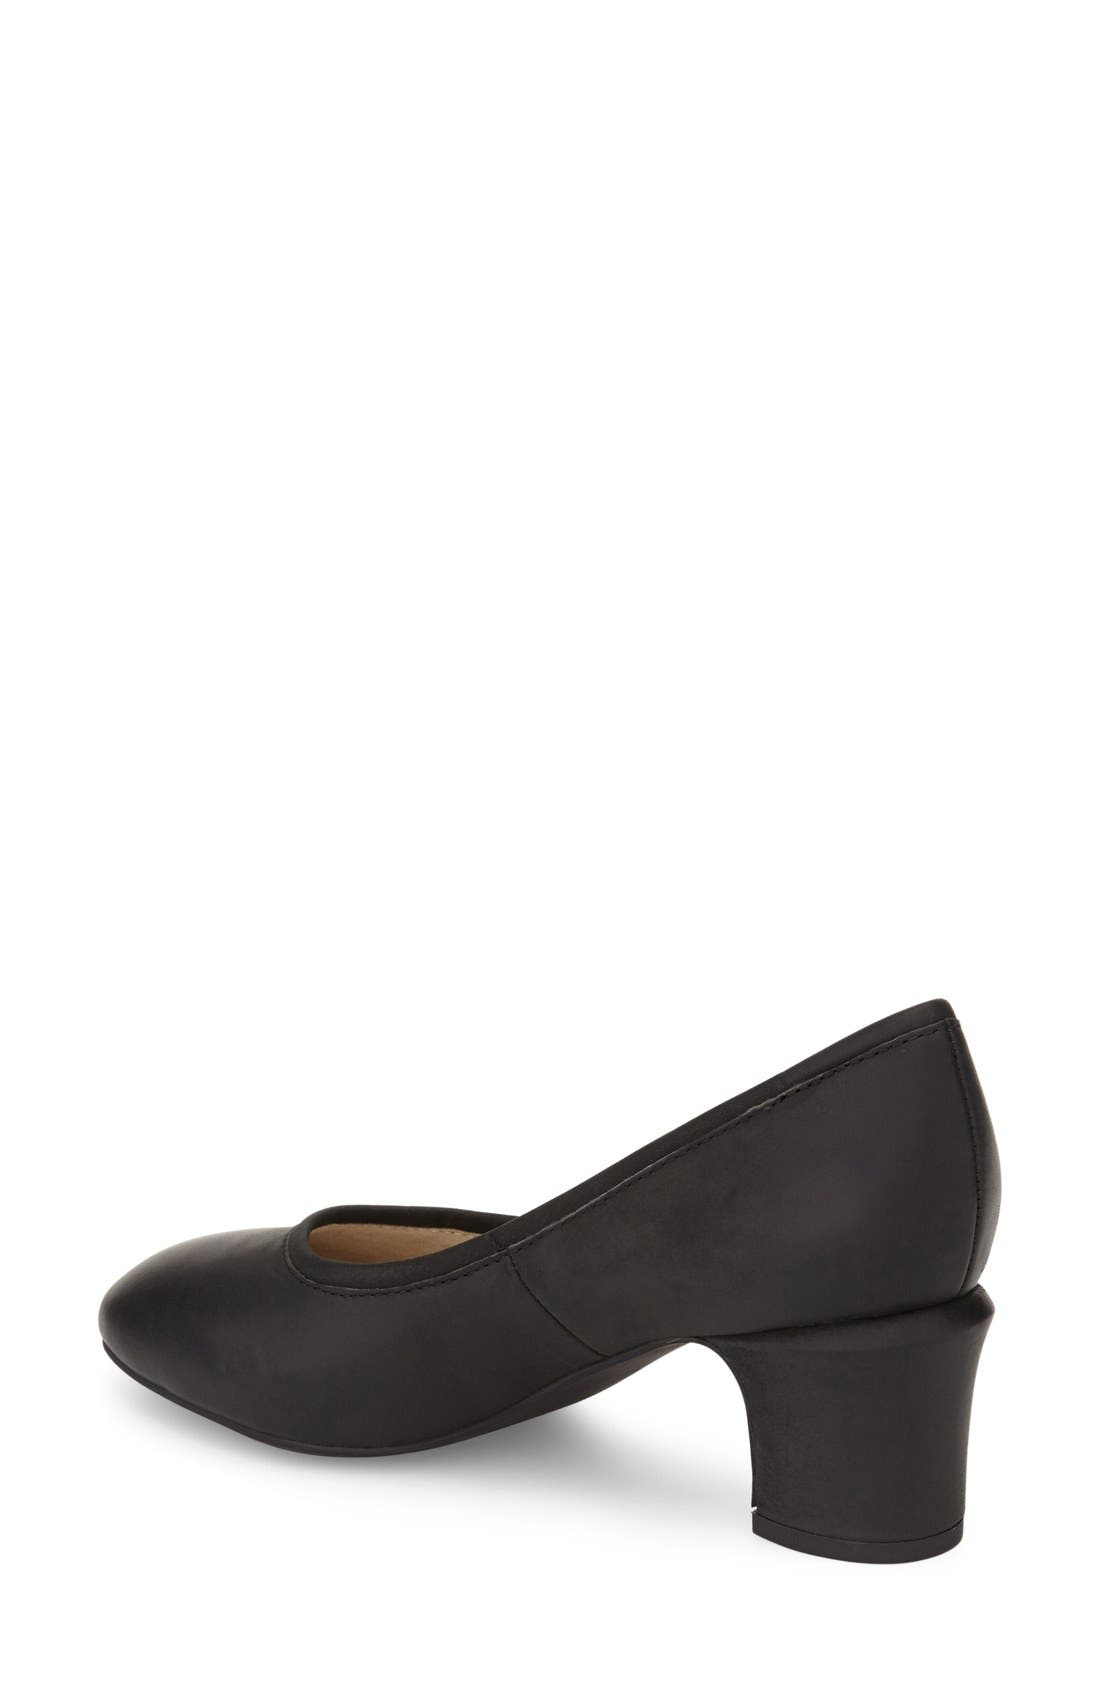 Alternate Image 2  - Seychelles Canopy Beveled Heel Pump (Women)